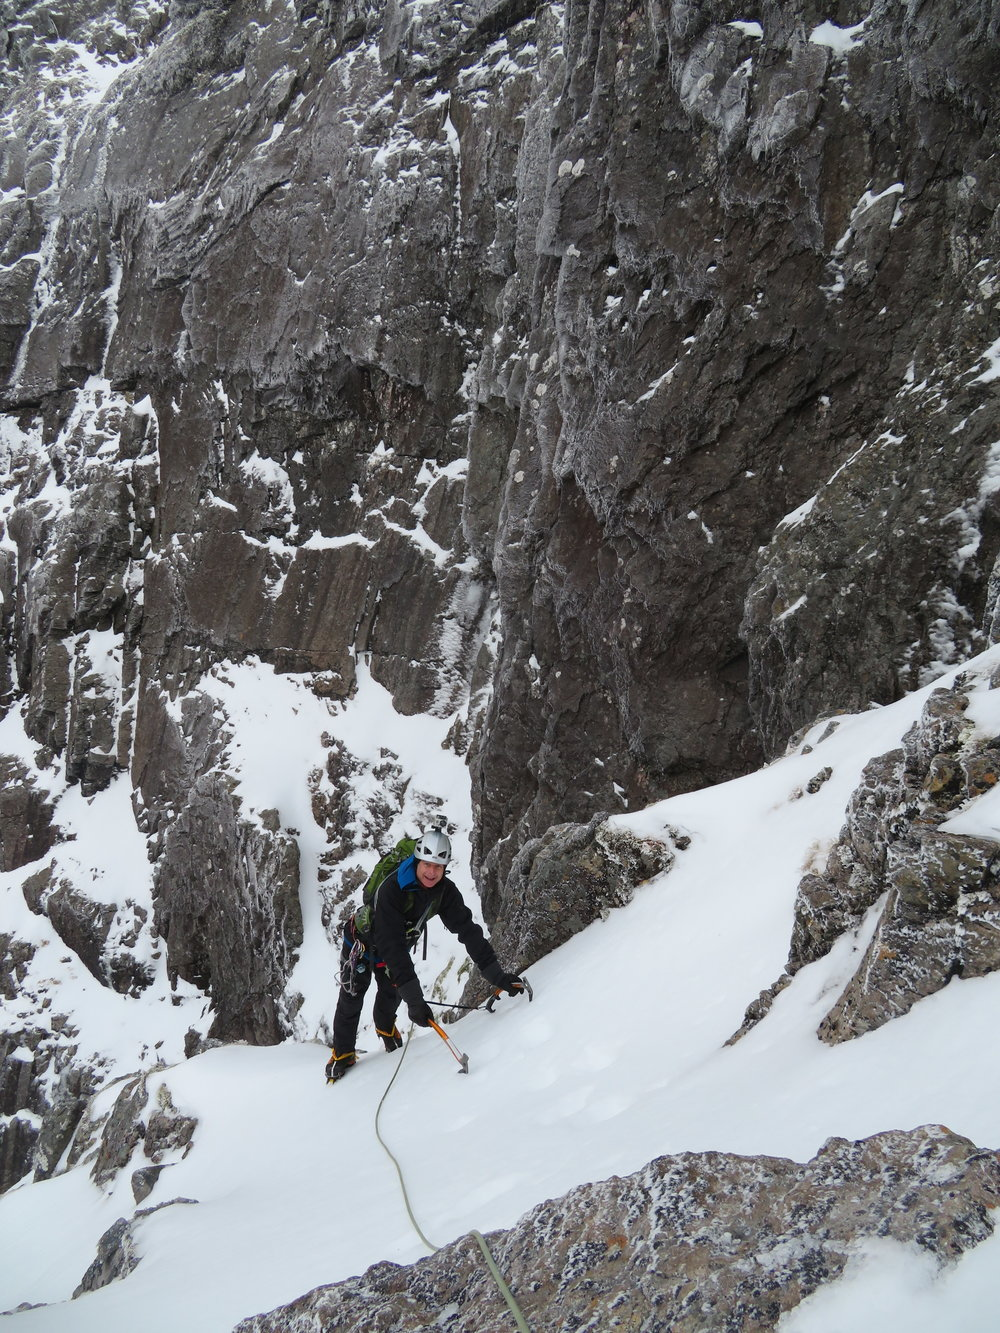 Back to Ben Nevis. This time with Austin to climb Number 3 Gully Buttress. A good start to the season.